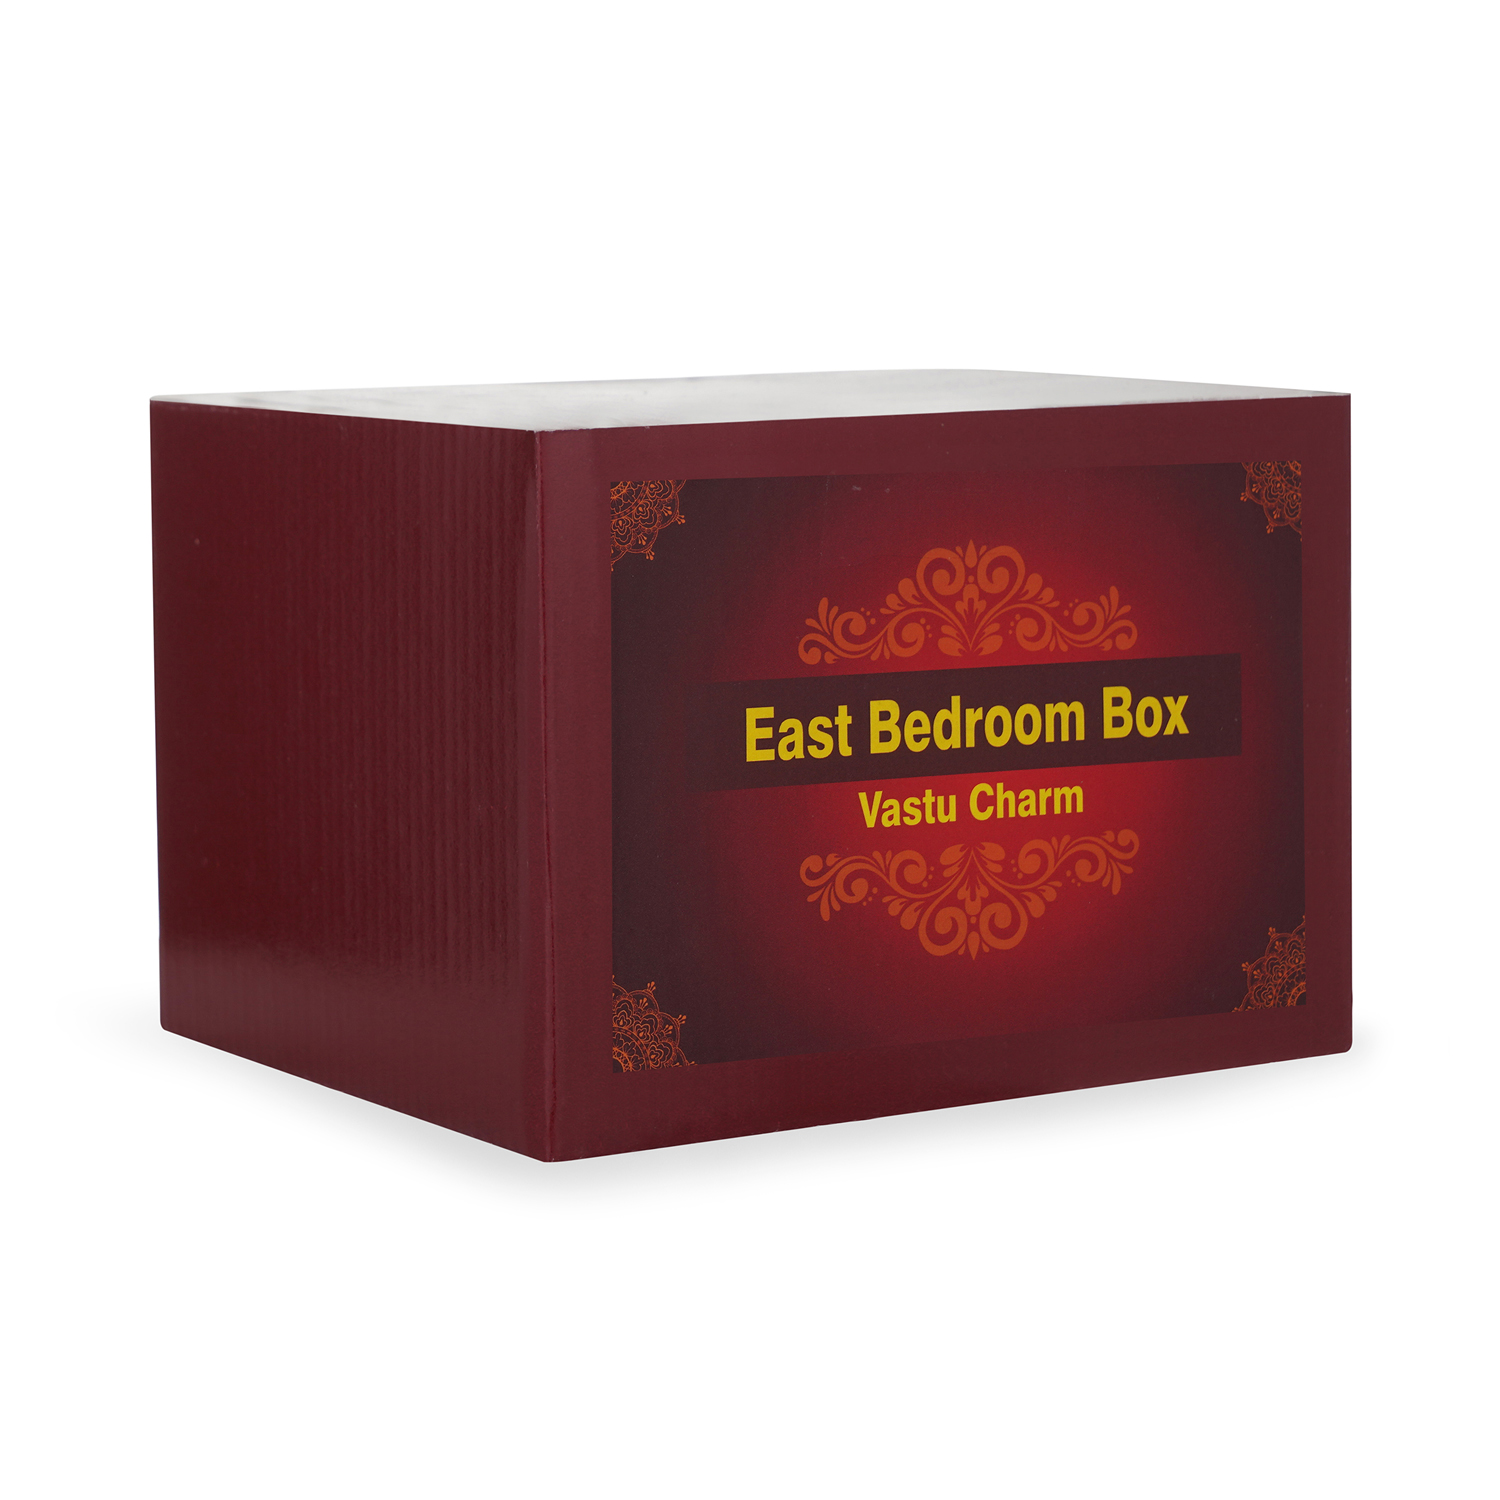 EAST BEDROOM BOX